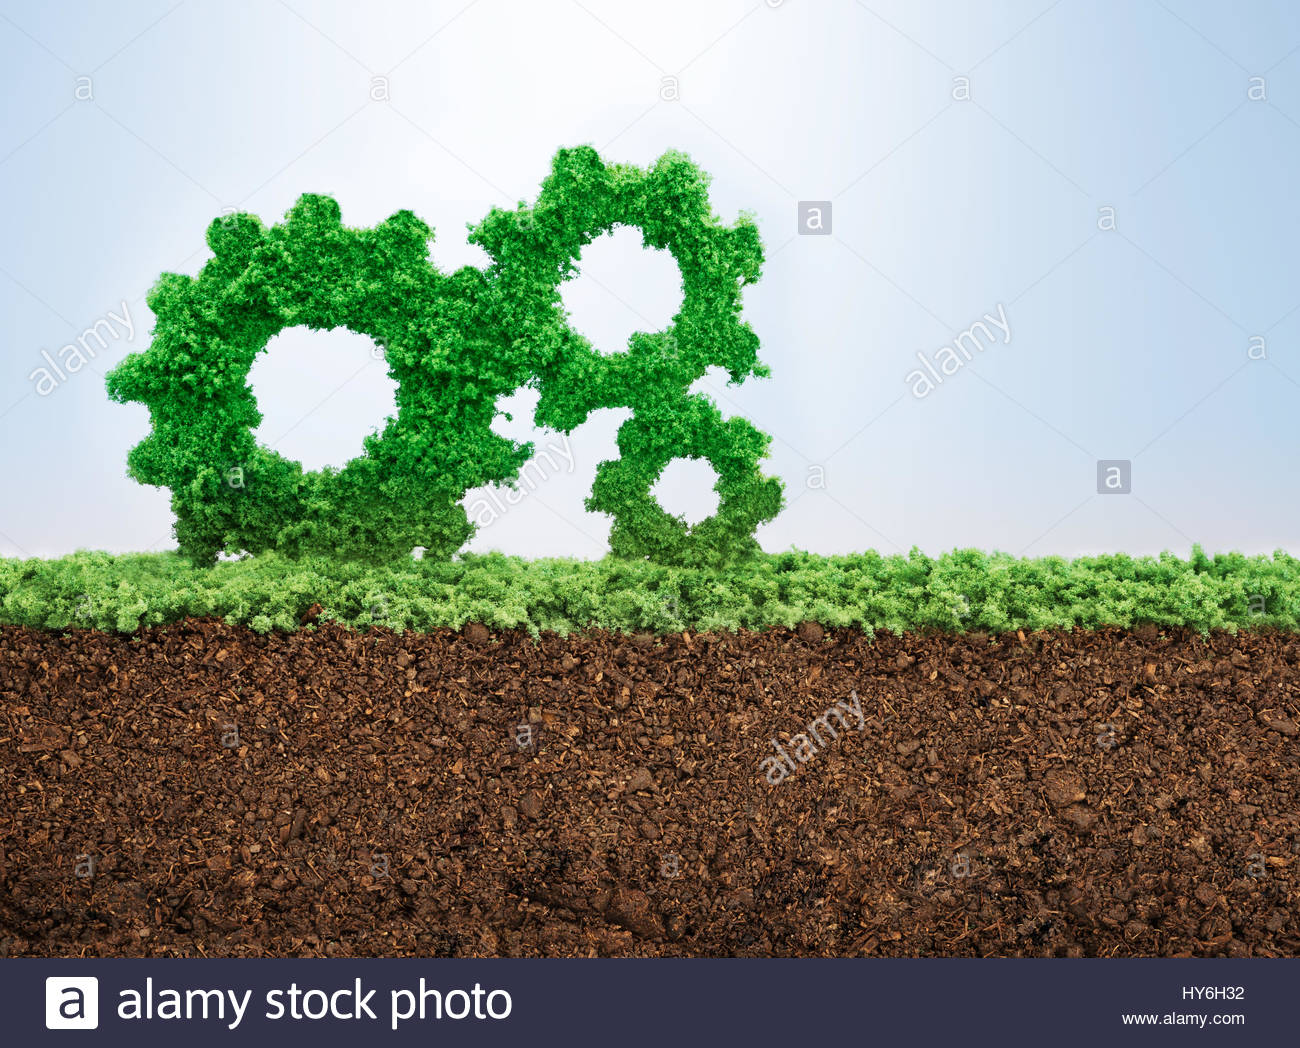 Business growth concept with grass growing in shape of gears - Stock Image